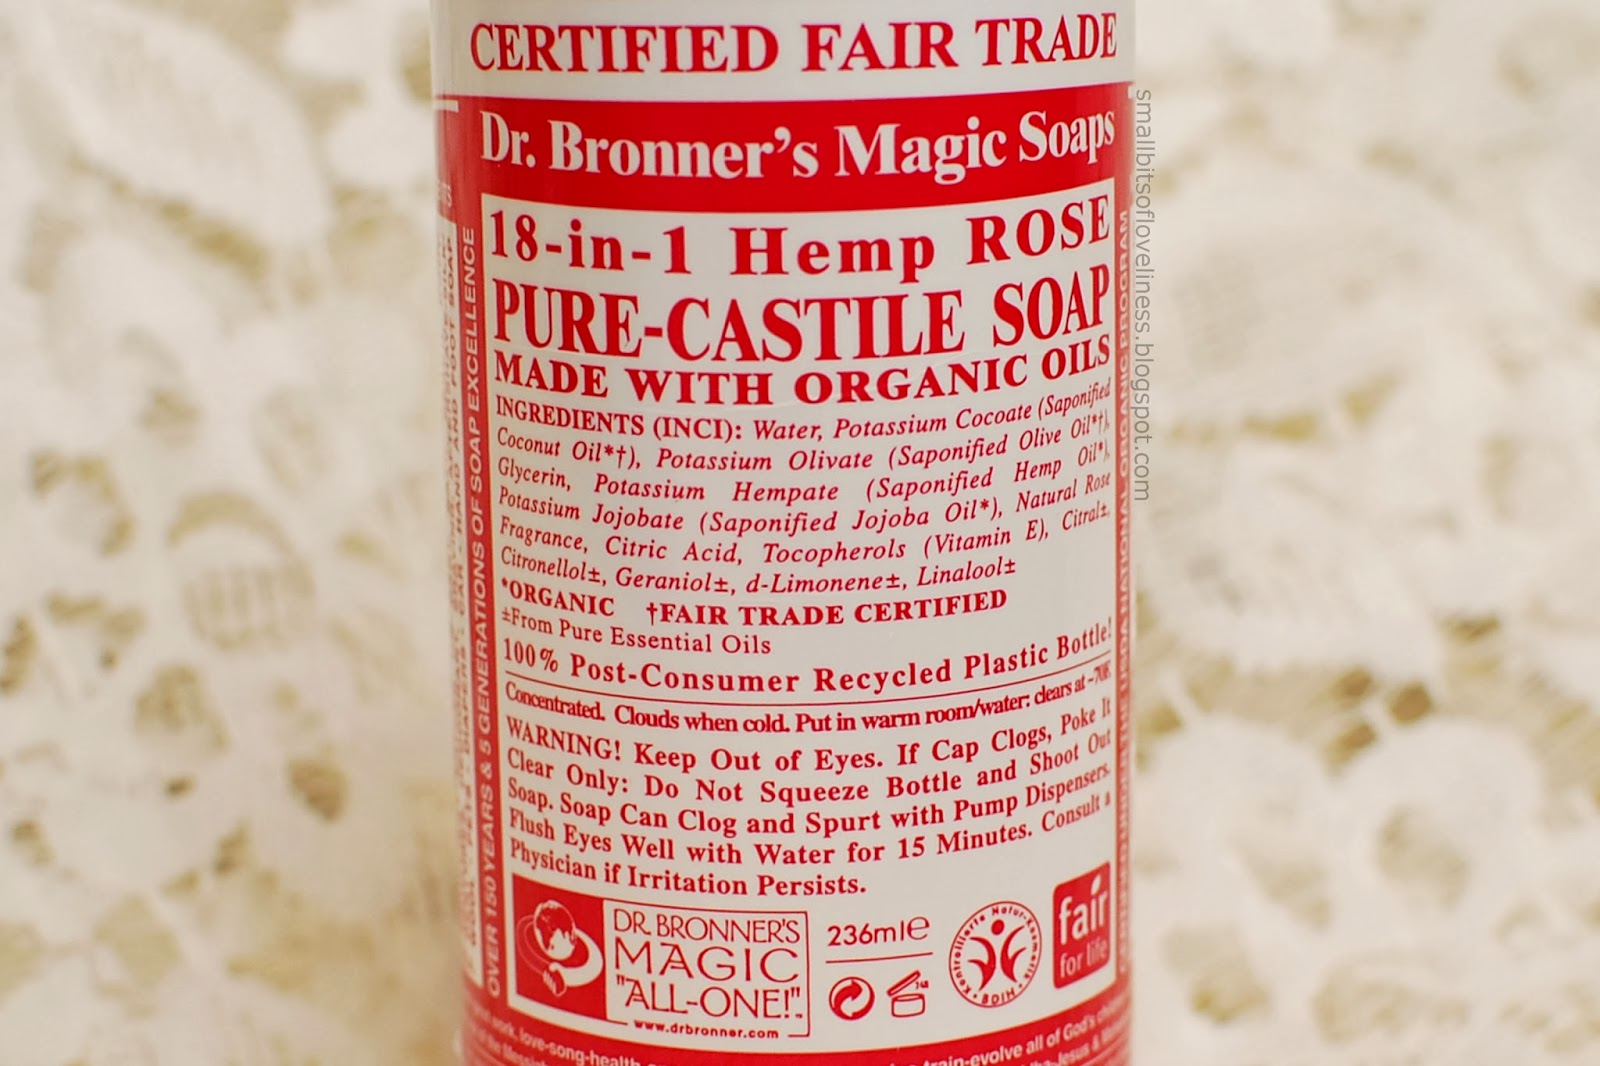 Dr. Bronner's Pure Castile Liquid Soap Rose ingredients